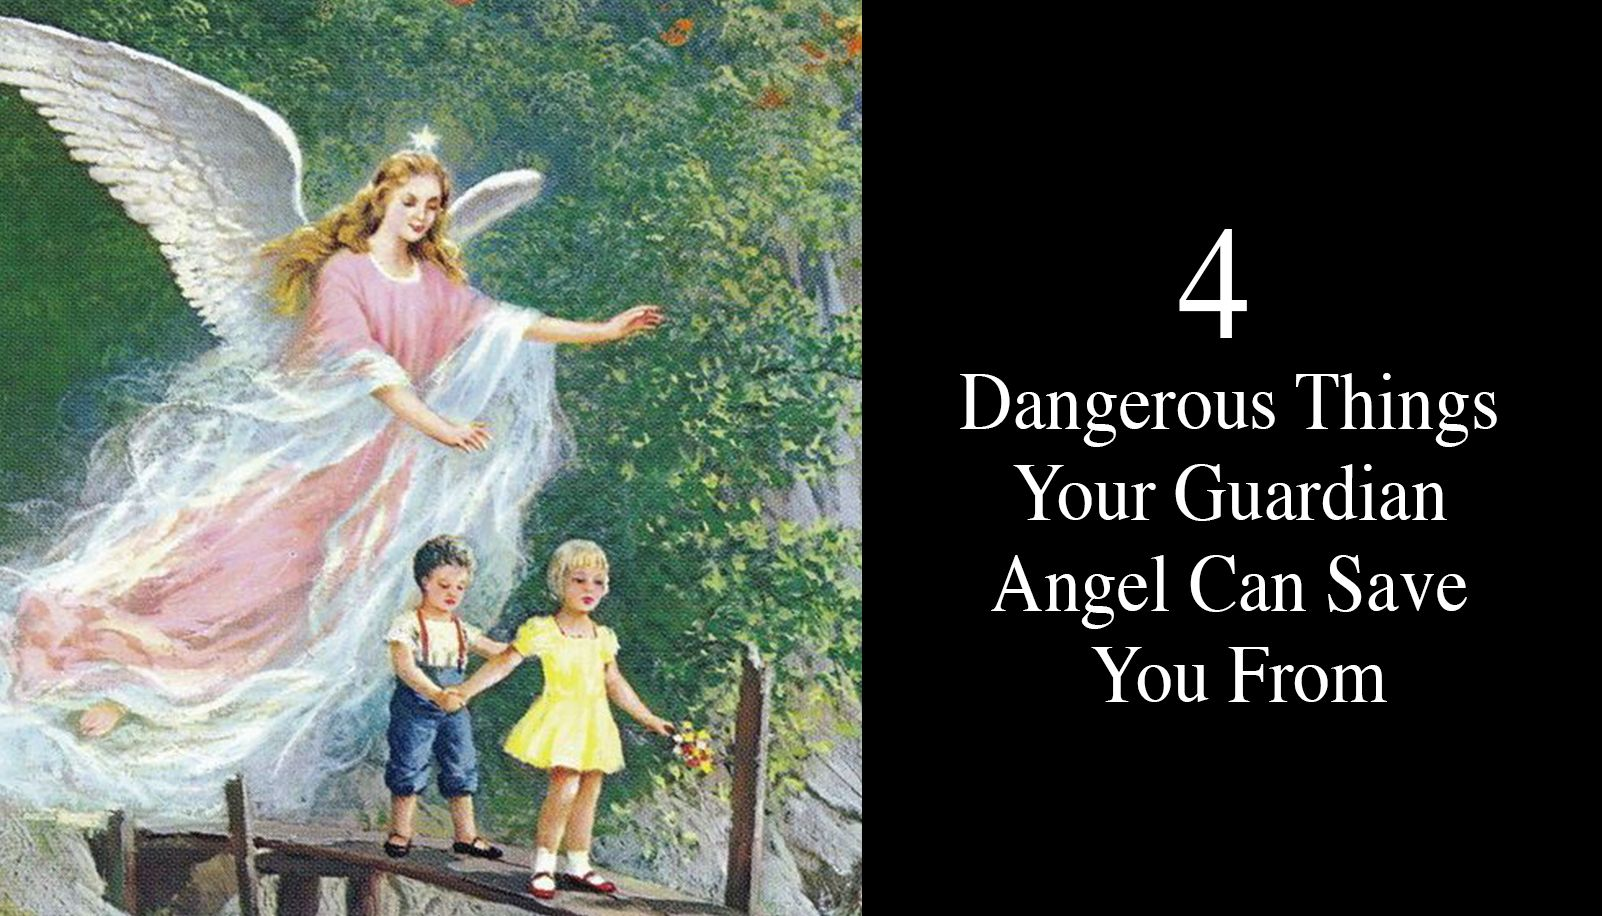 4 Dangerous Things Your Guardian Angel Can Save You From